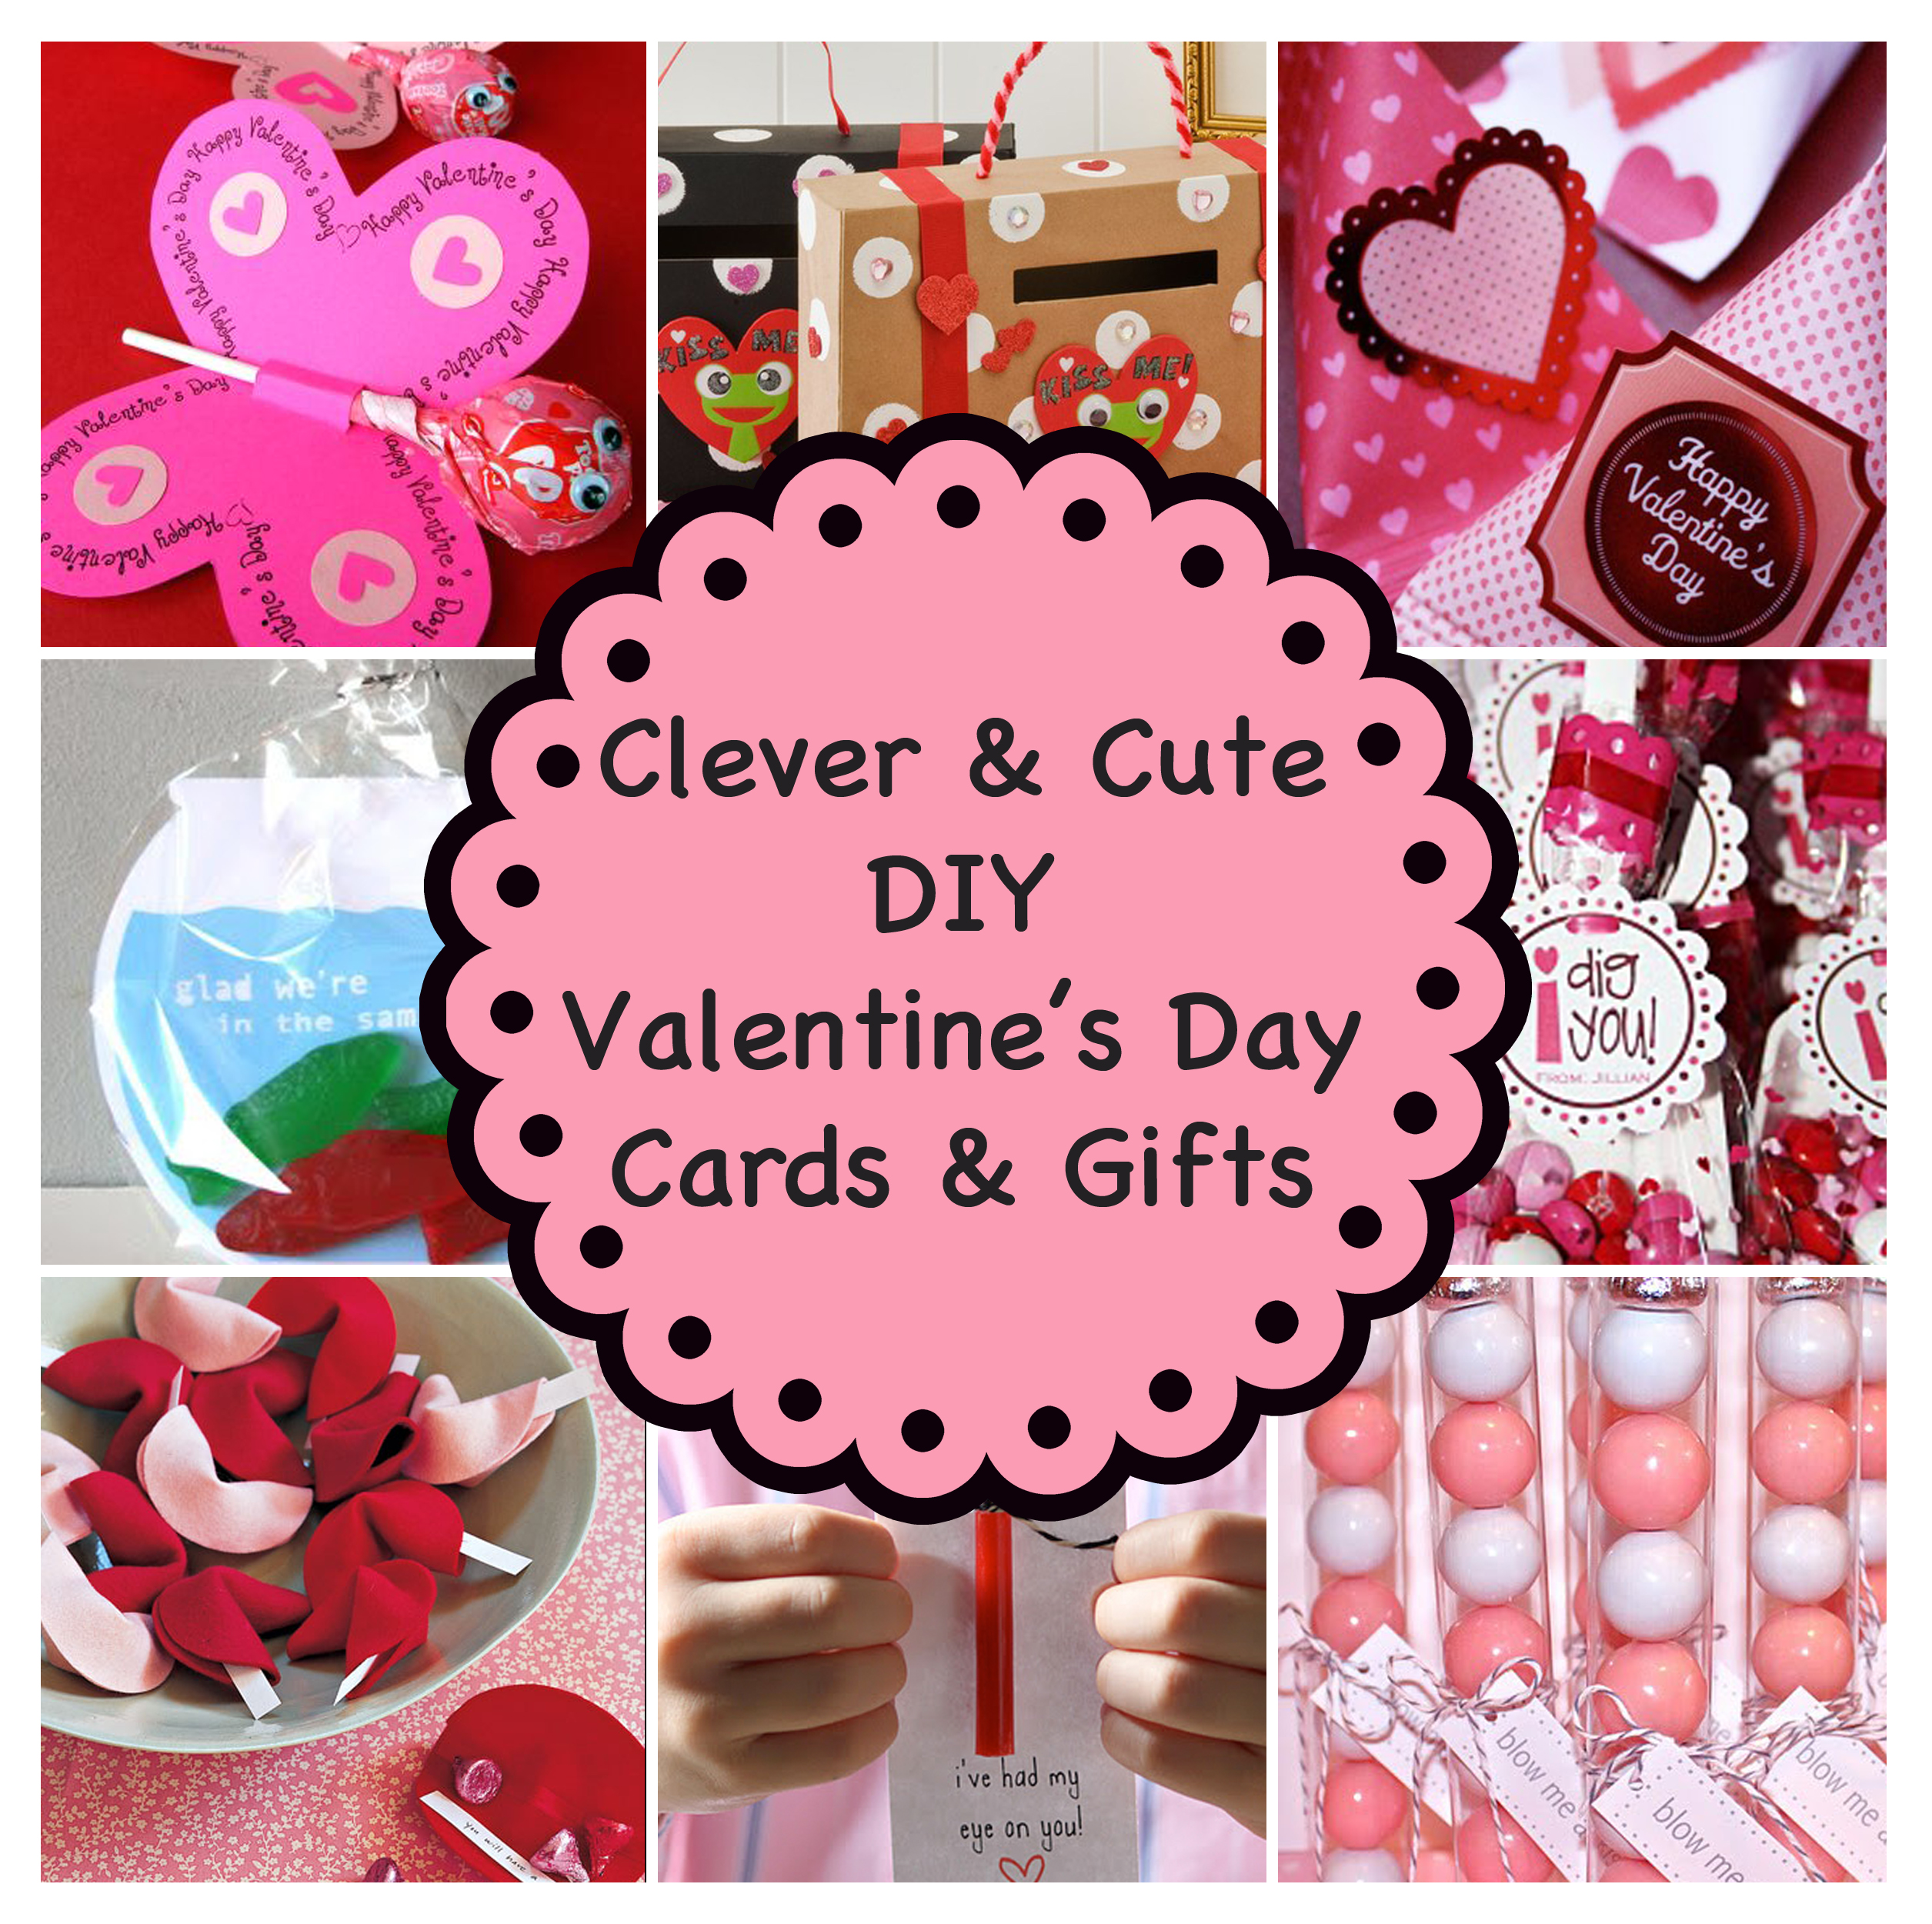 Clever and Cute DIY Valentines Day Cards Gifts – How to Make a Cute Valentines Day Card